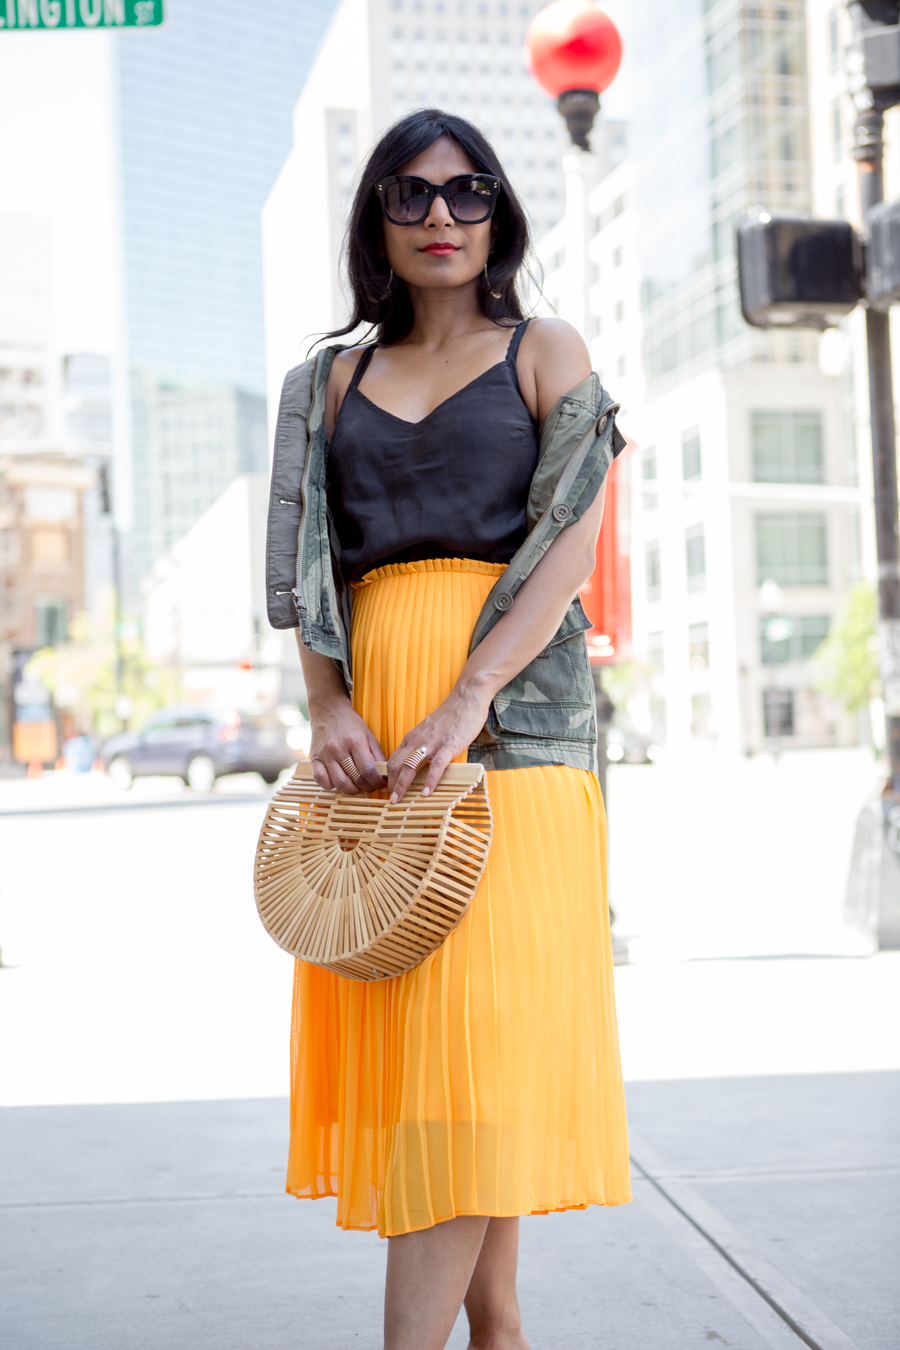 ann taylor, taxi cab yellow, marigold, pleats, midiskirt, urban chic, edgy, trendy, feminine style, style tips, style hunter, stylist, petite fashion, abercrombie, affordable style, style remix, petite blogger, boston blogger, boston back bay, cult gaia